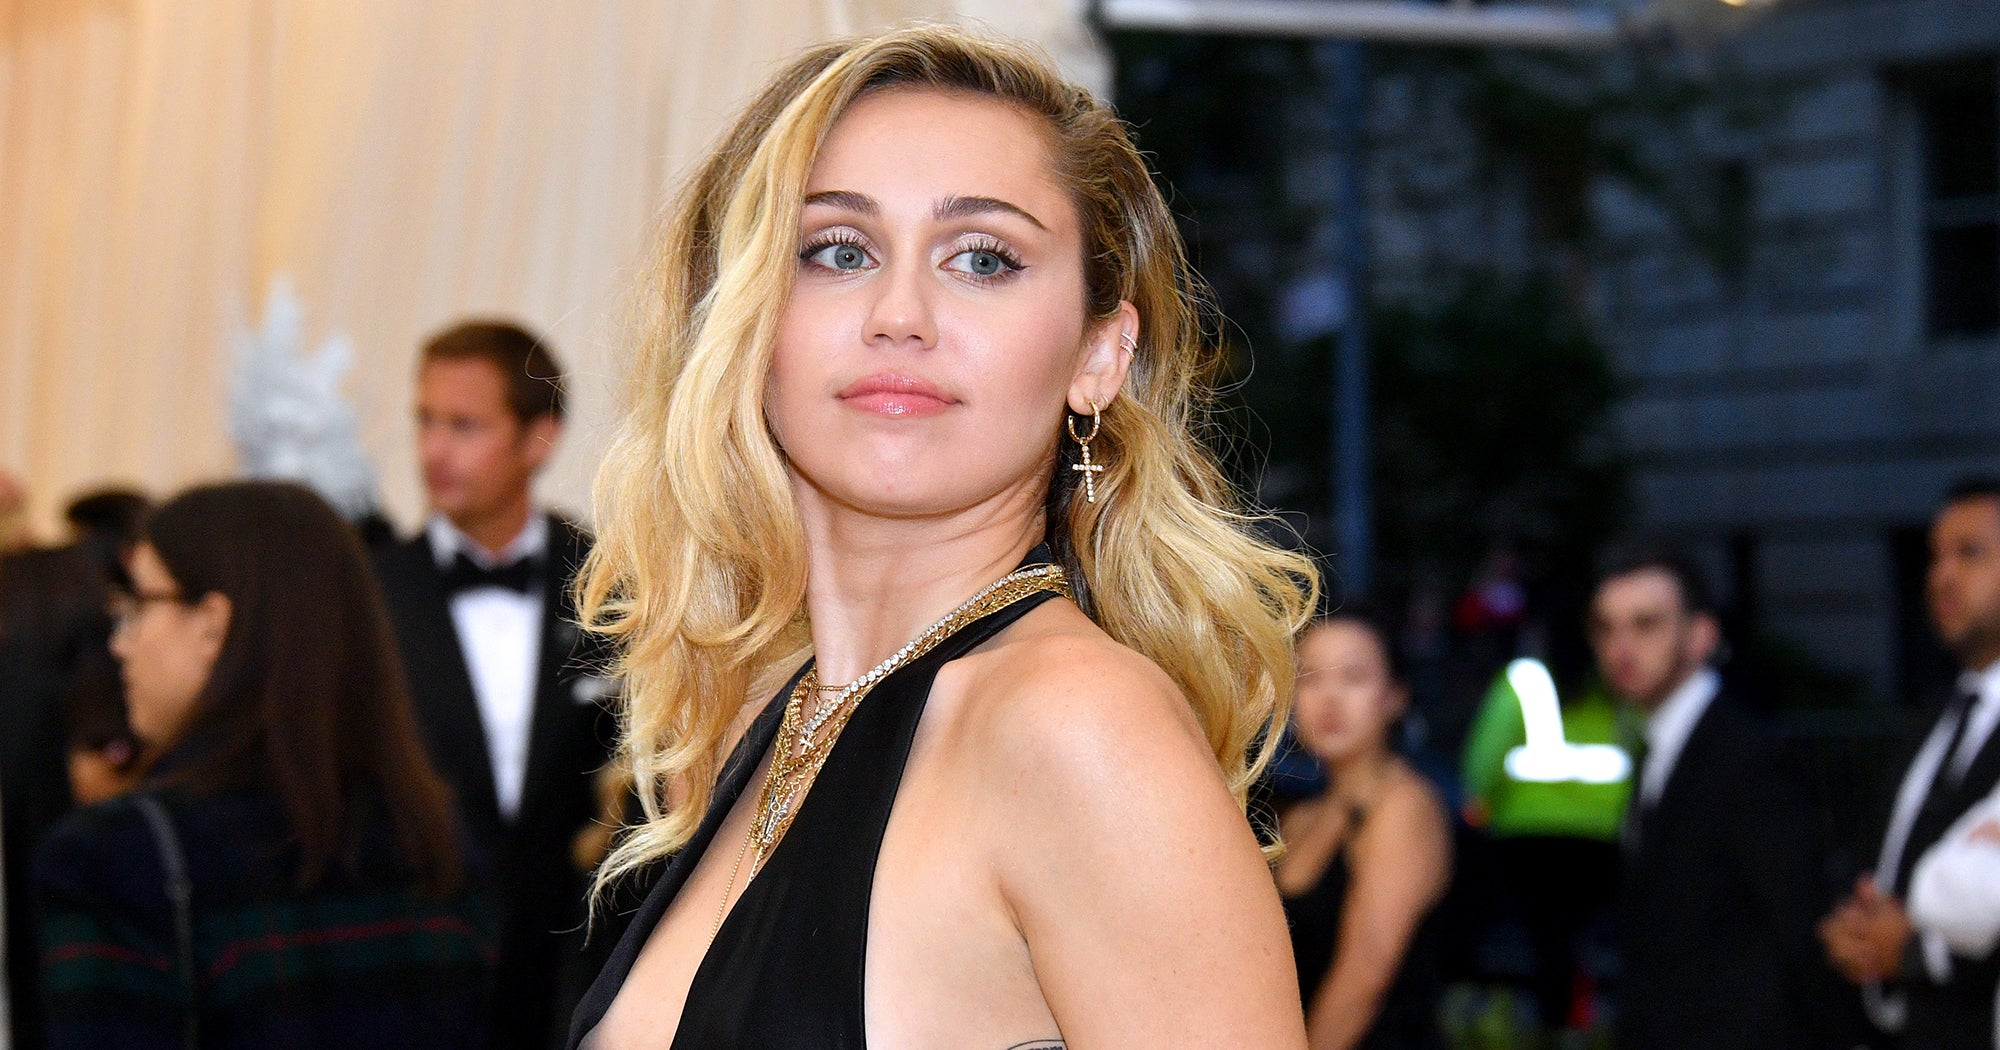 Miley Cyrus' Mullet Ponytail Might Just Start A Summer Trend